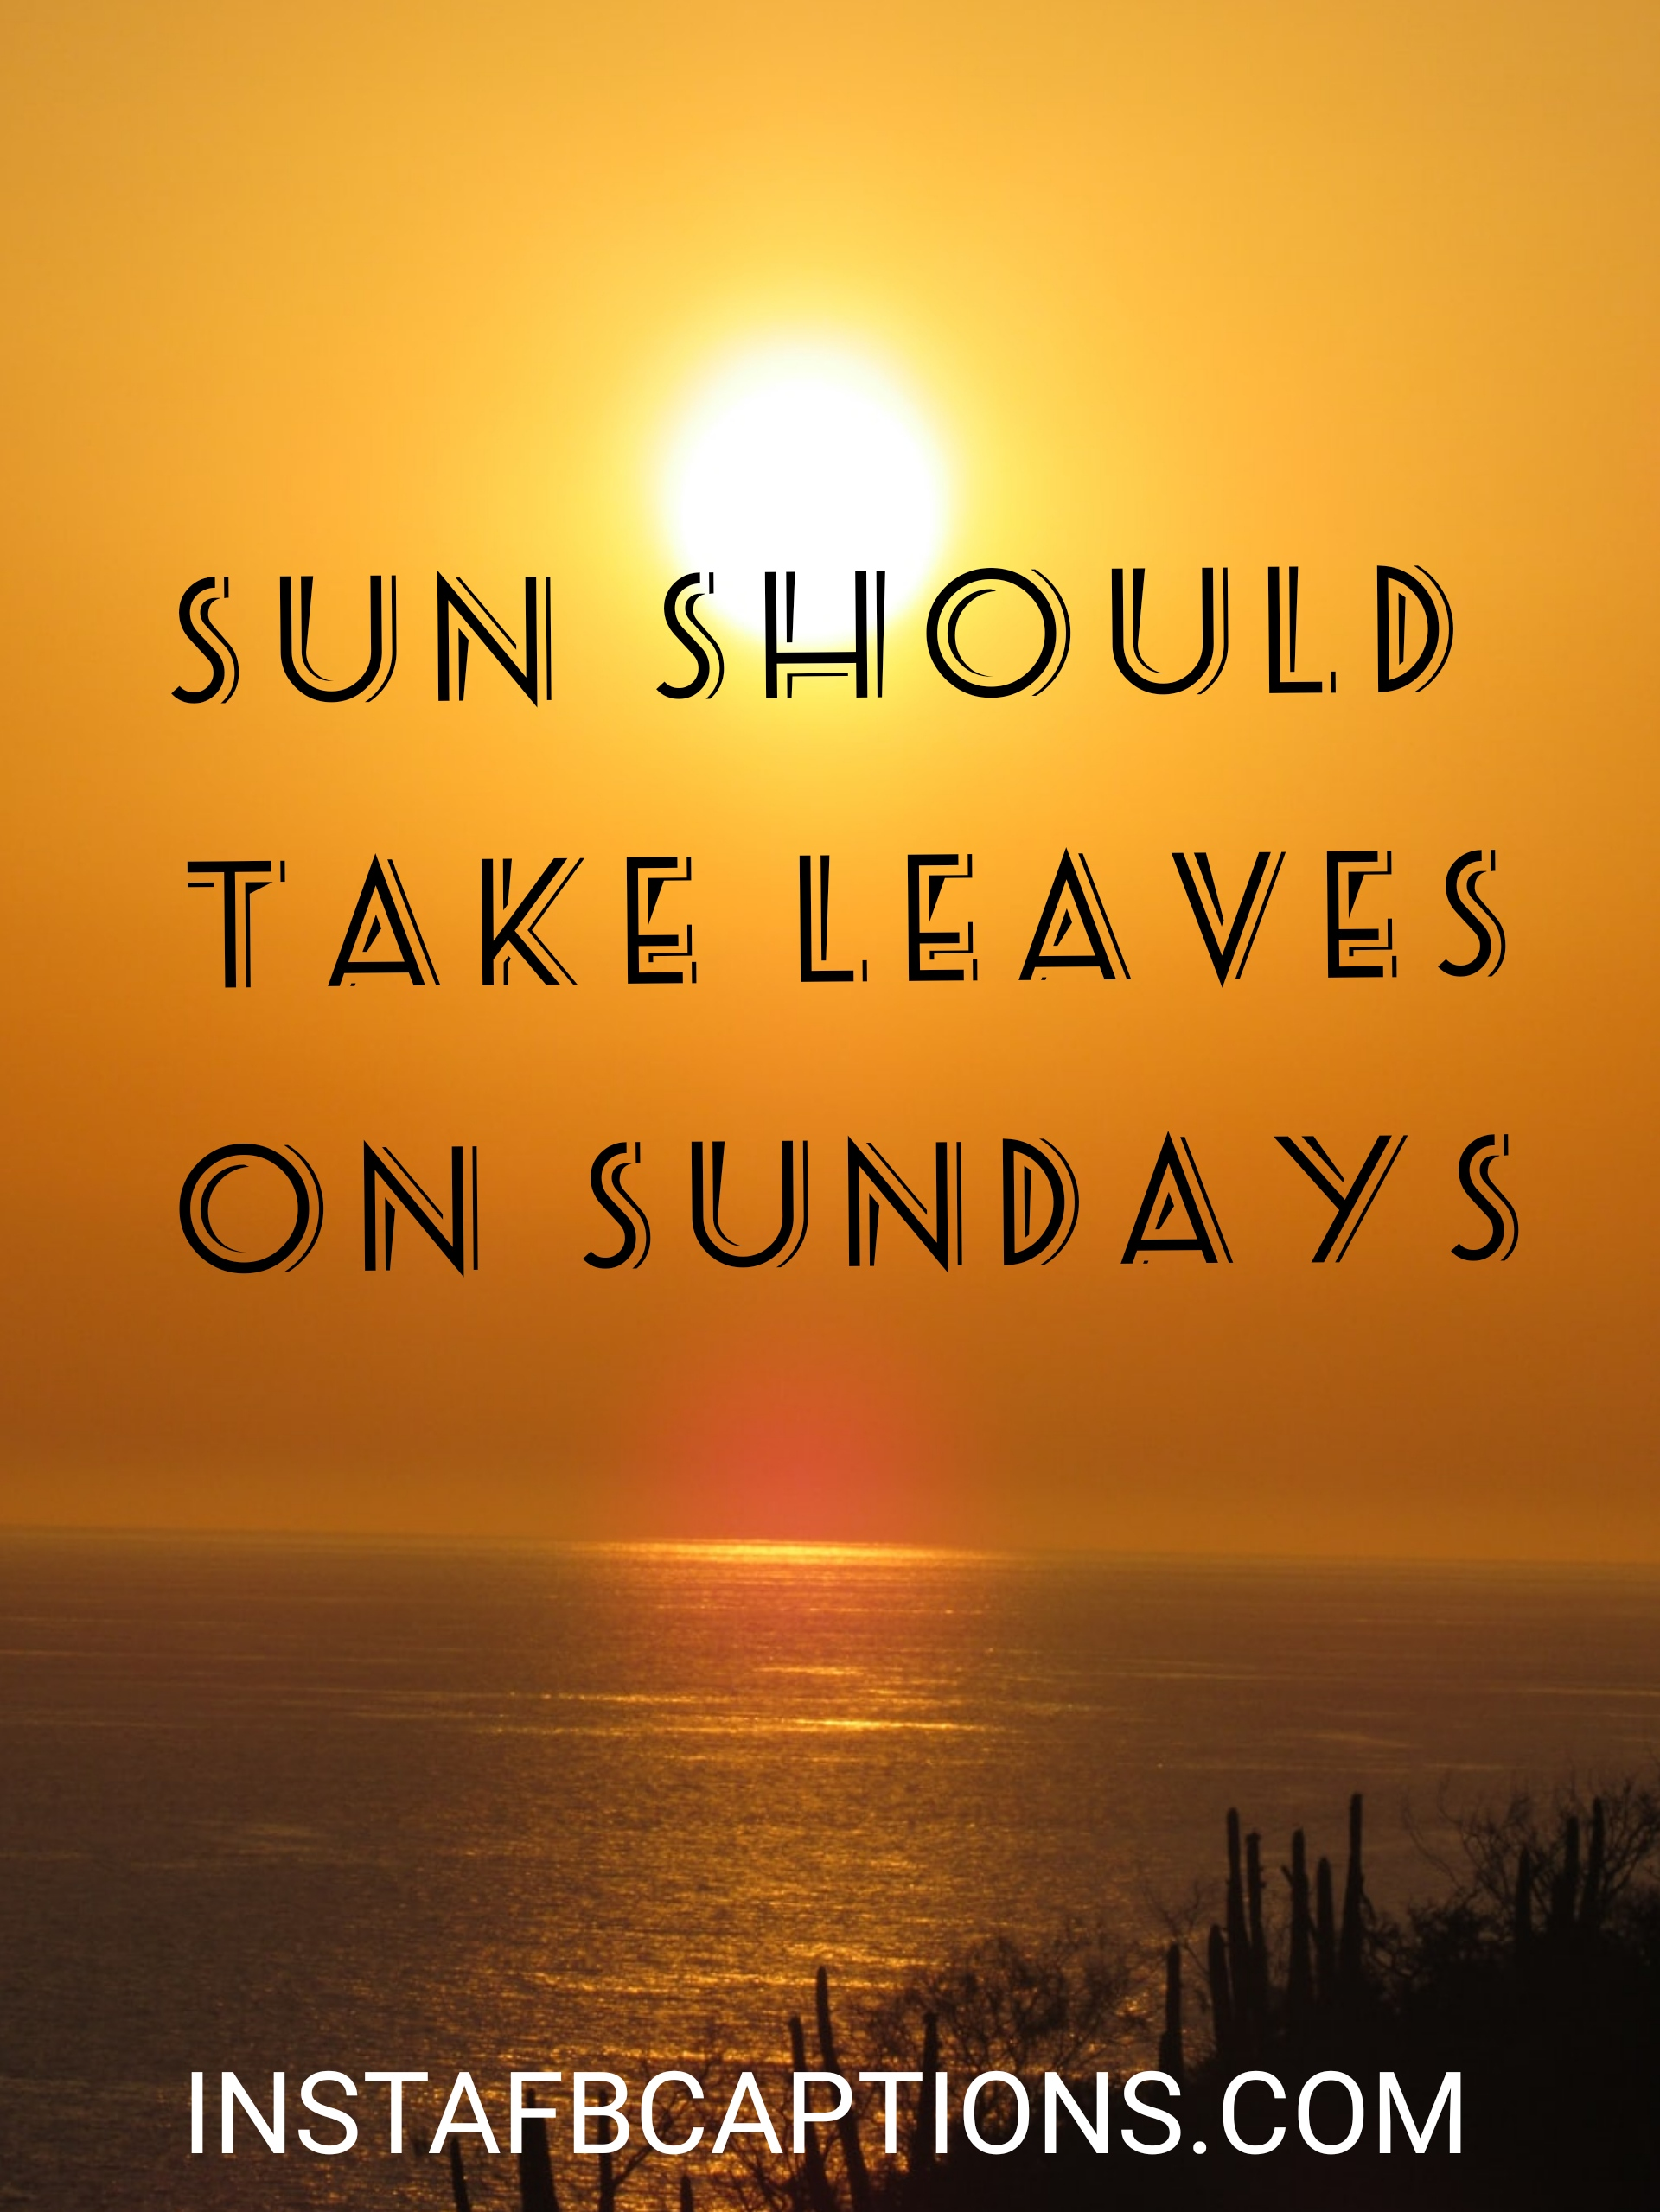 Sun Should Take Leaves On Sundays  - sun should take leaves on sundays - 500+ Weekend Captions (Friends Long Trip Food Throwback)